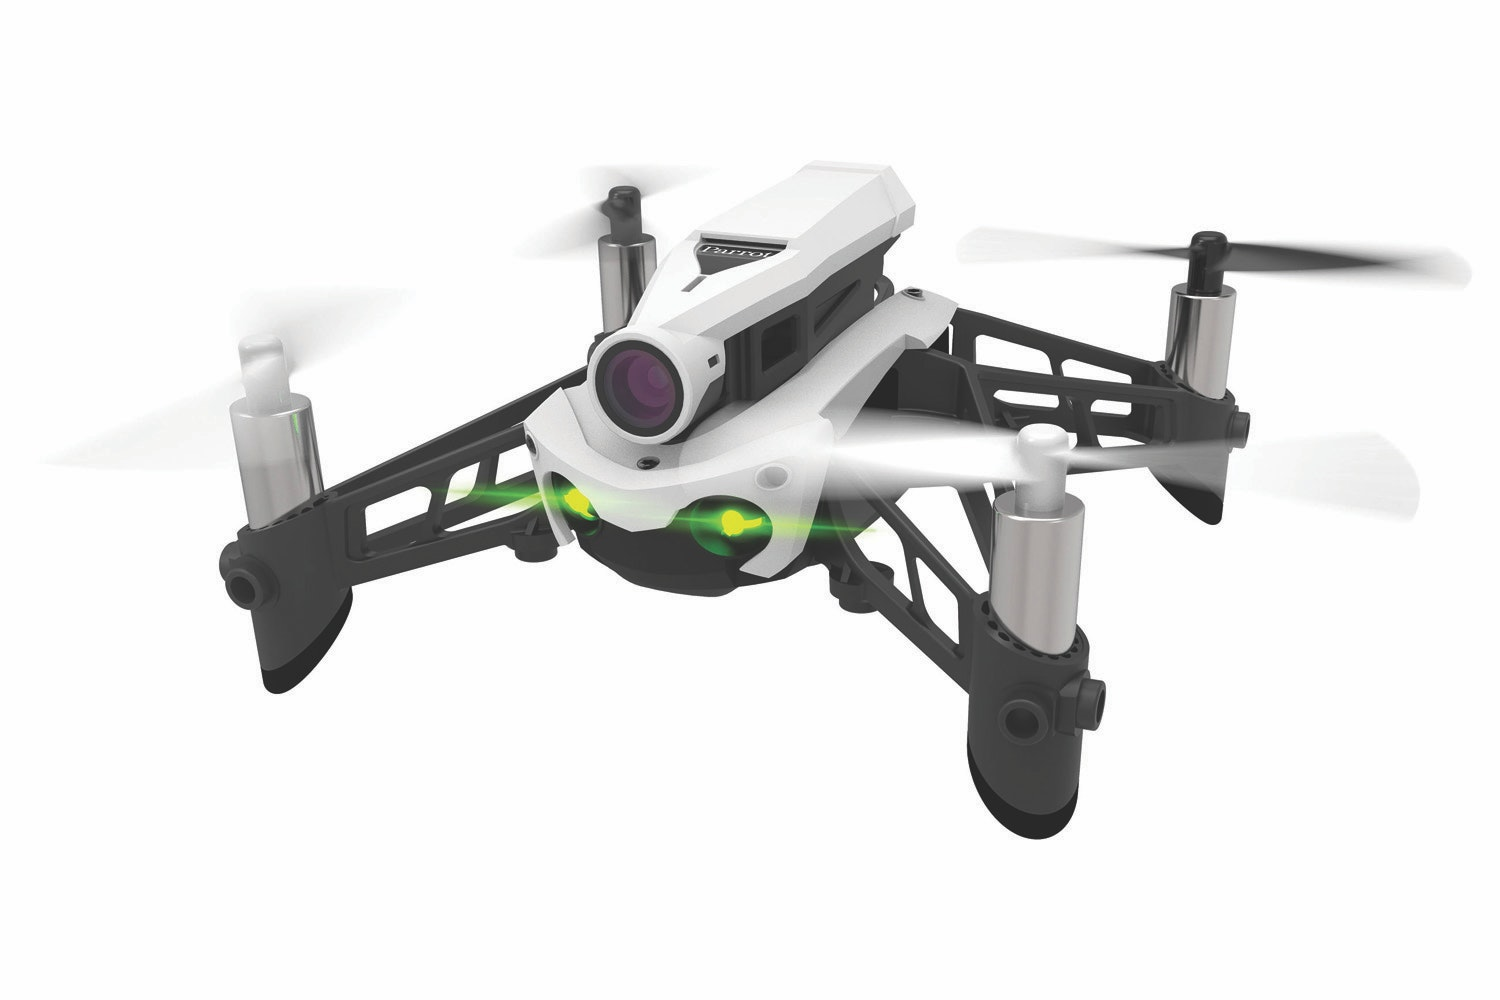 Parrot Mambo FPV Drone